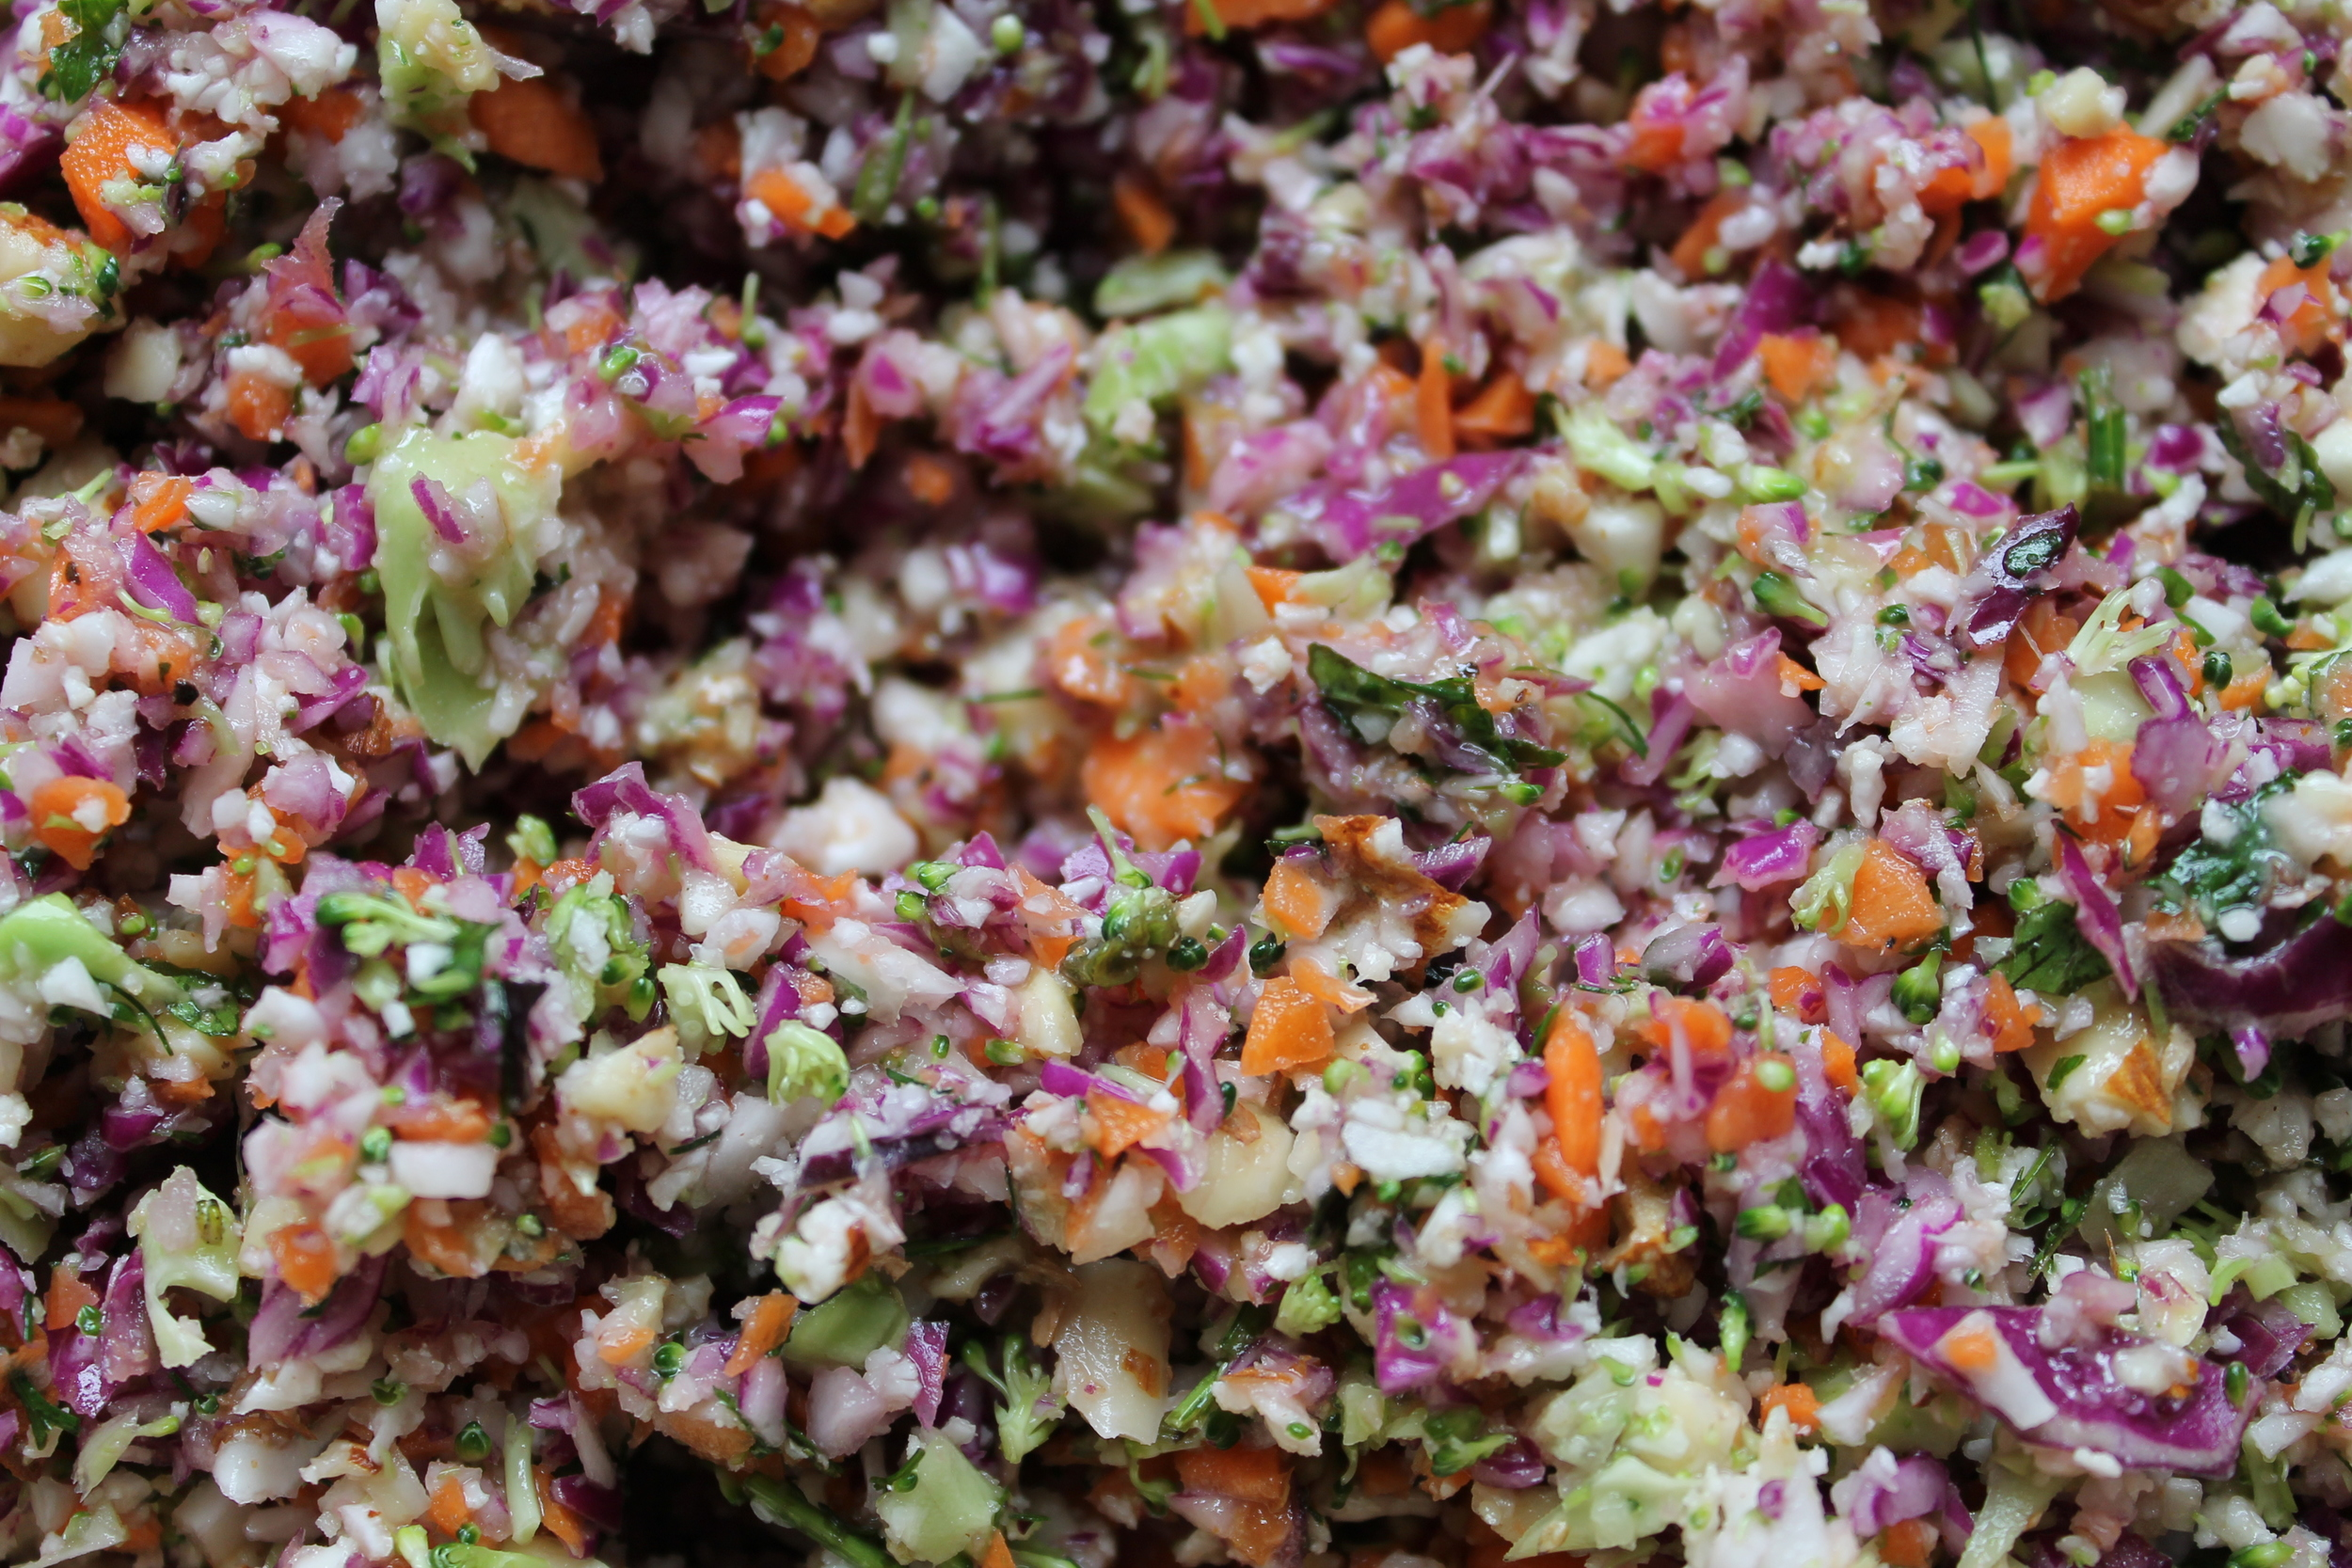 Raw Chopped Salad with Orange Dijon Dressing - the perfect detox or weight loss salad that is high in fiber and essential nutrients. Find the recipe at www.fernsandpeonies.com